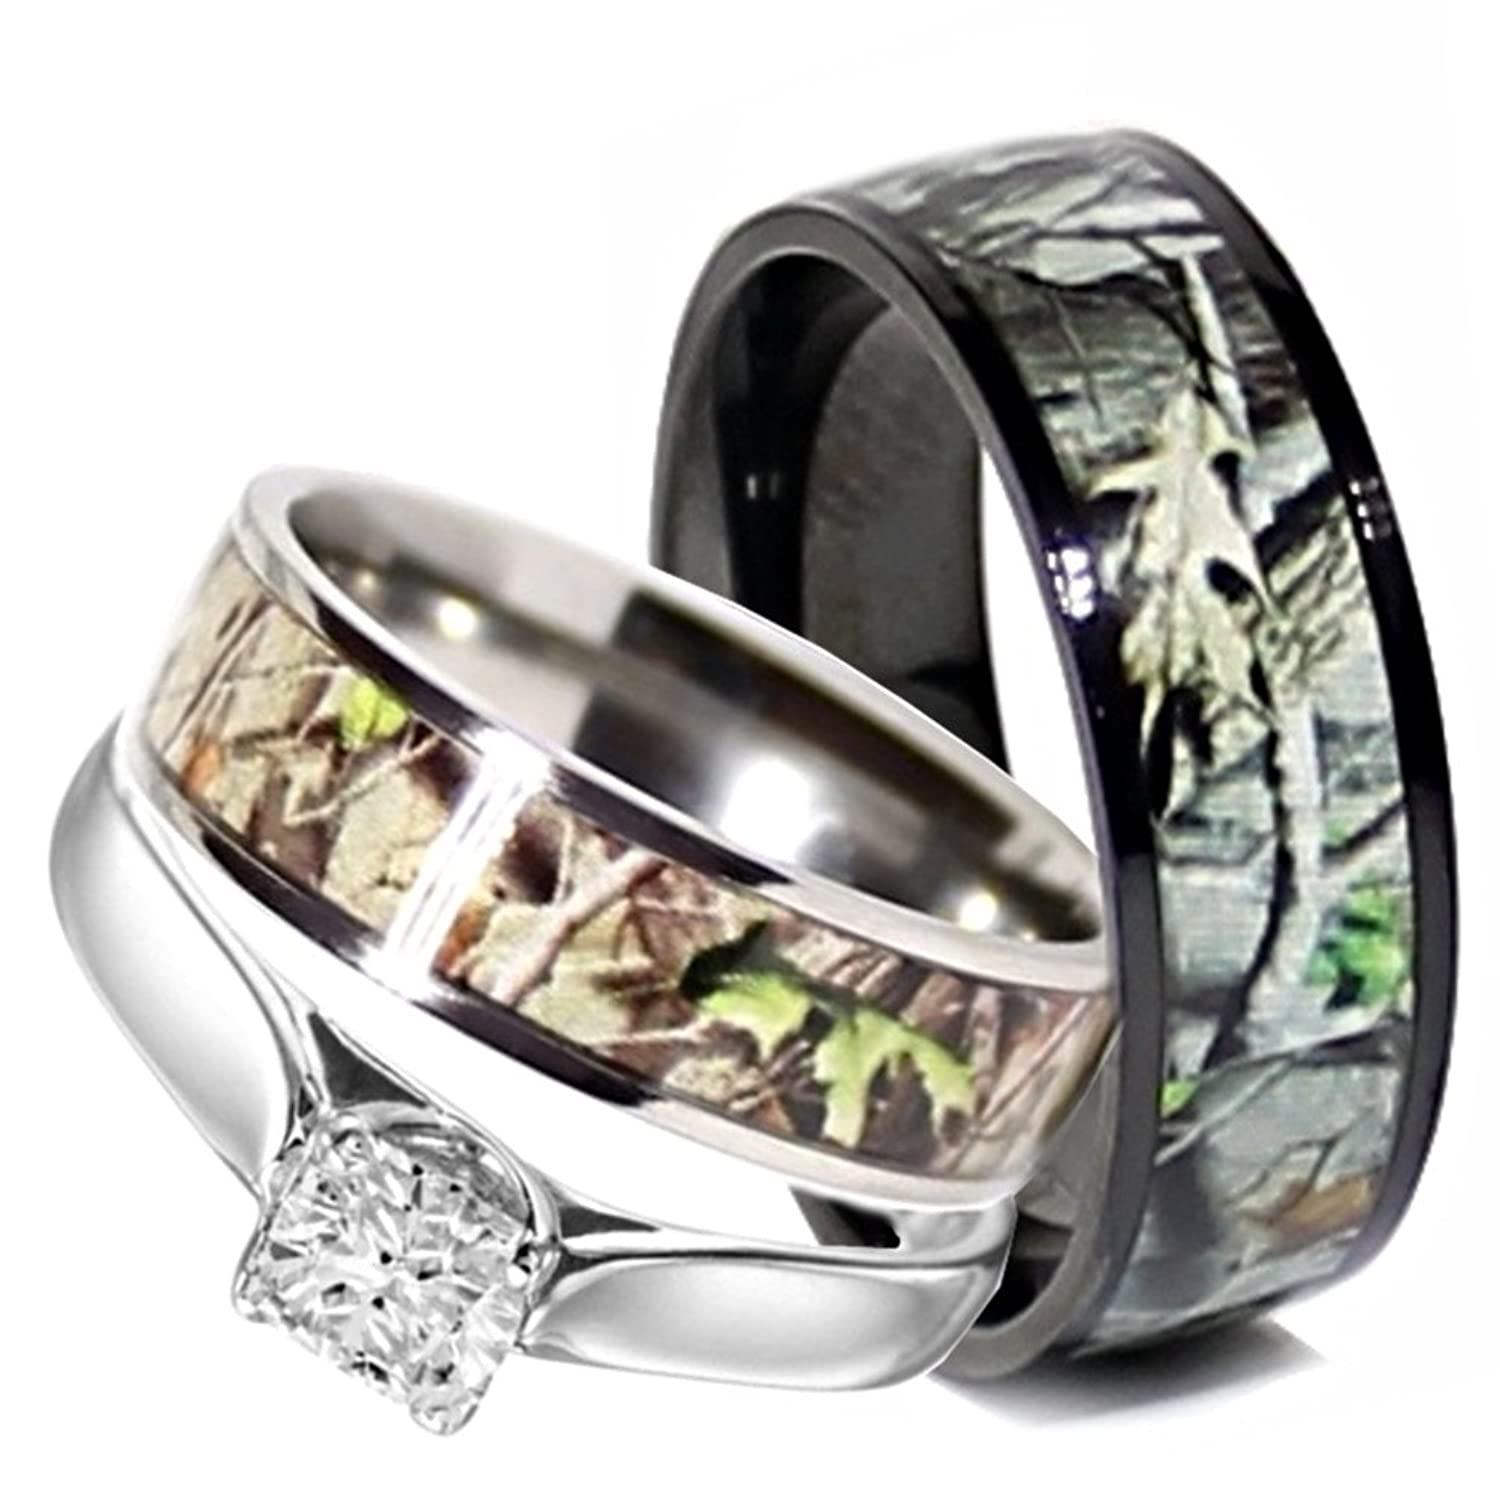 amazoncom camo wedding rings set his and hers 3 rings set sterling silver and titanium size men 10 women 10 jewelry - His Hers Wedding Rings